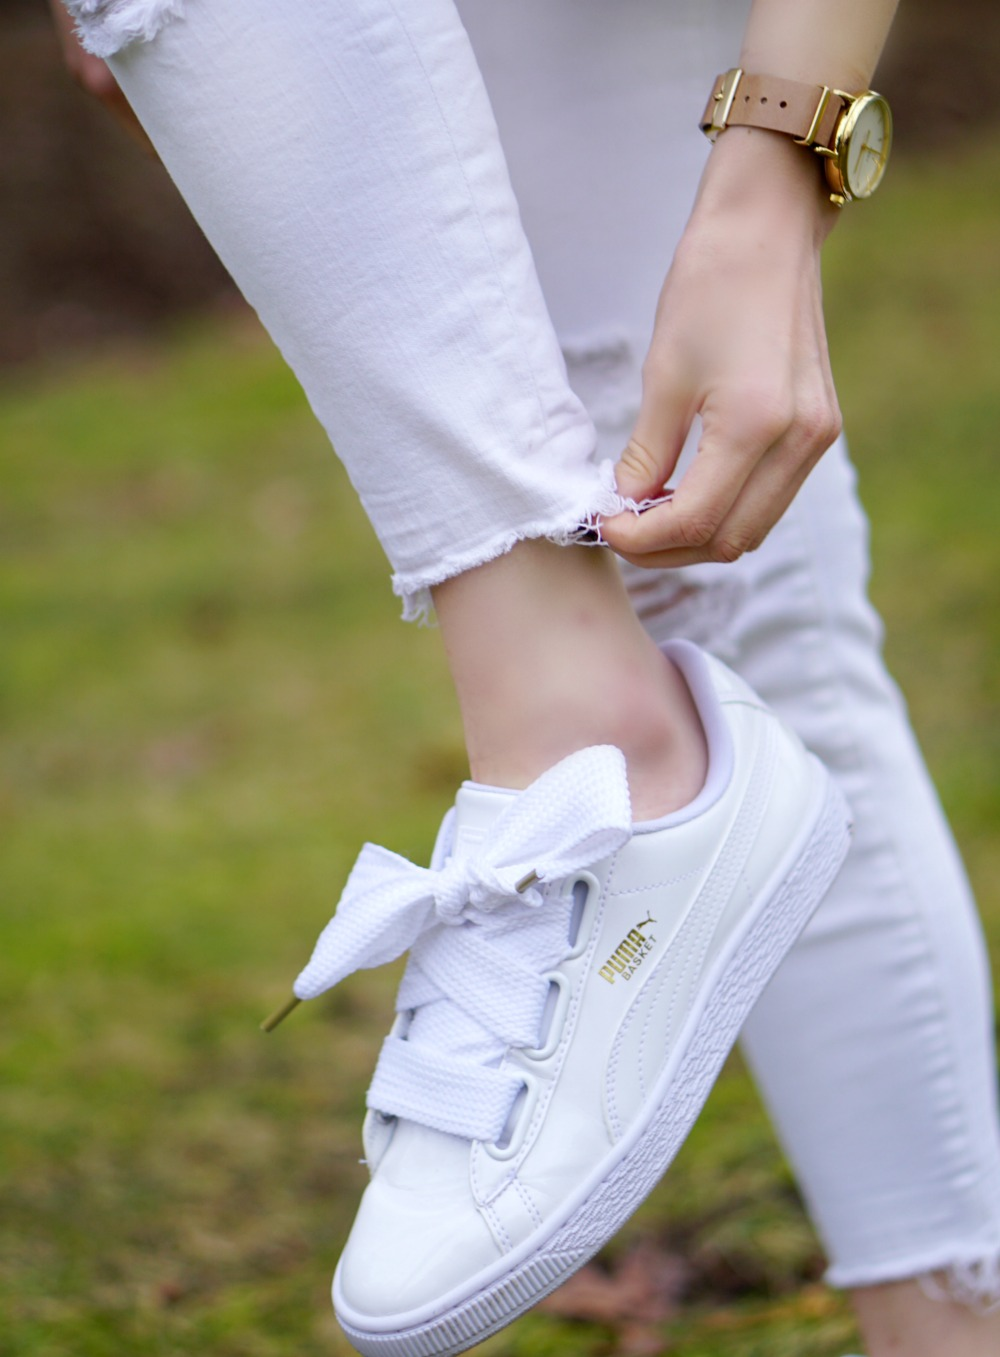 PUMA Basket Heart Sneakers Review 3 Style Sprinter